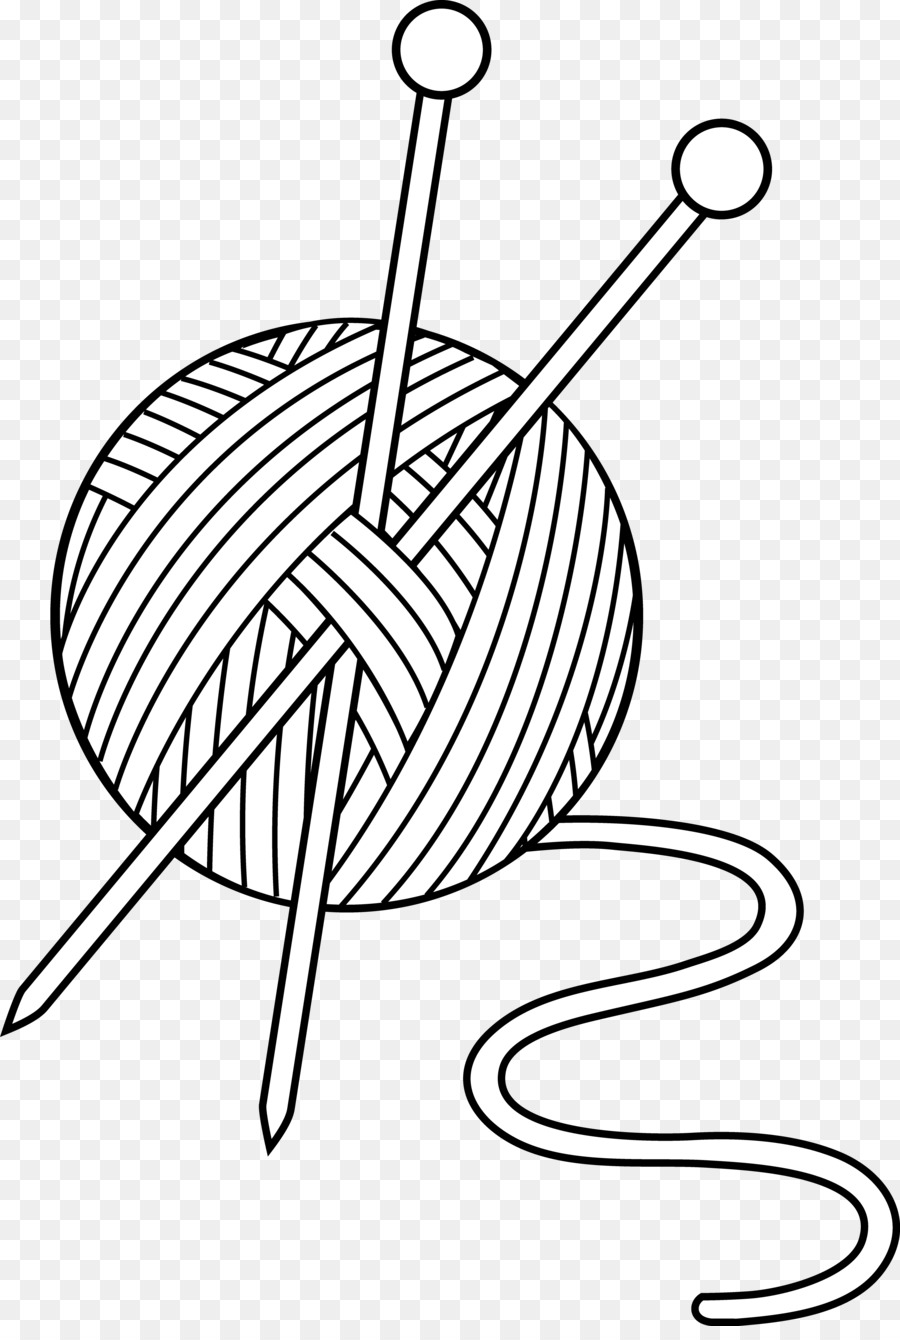 Wool clipart png svg royalty free Yarn Line Art png download - 3504*5161 - Free Transparent ... svg royalty free